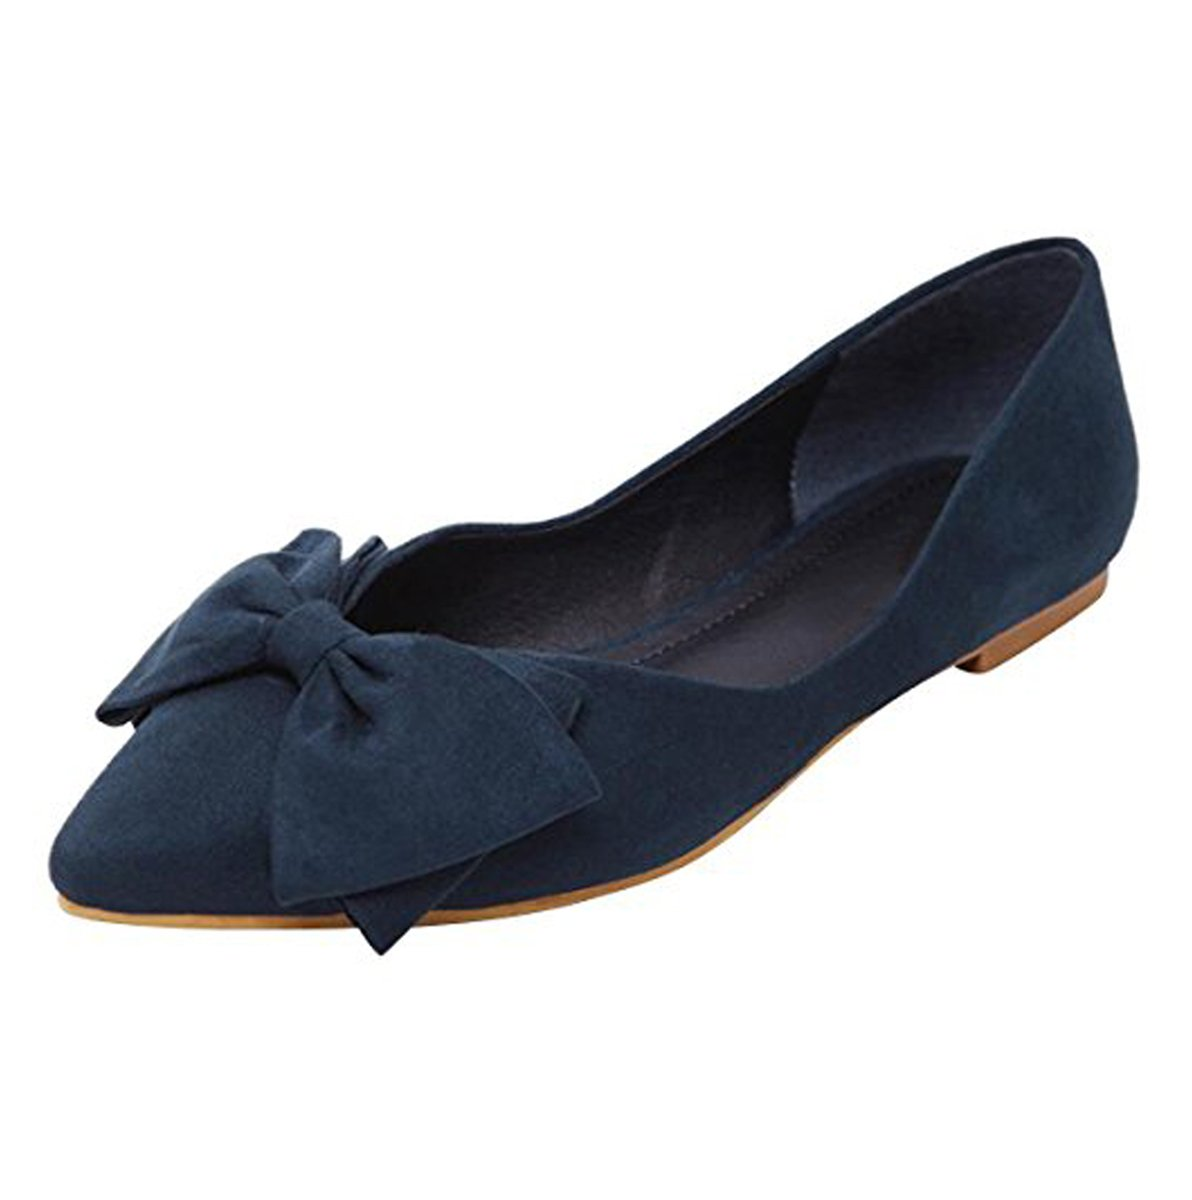 Stunner Women's Cute Bowknot Pointy Toe Flats Comfort Slip-On Ballet Shoes Navy Blue 40